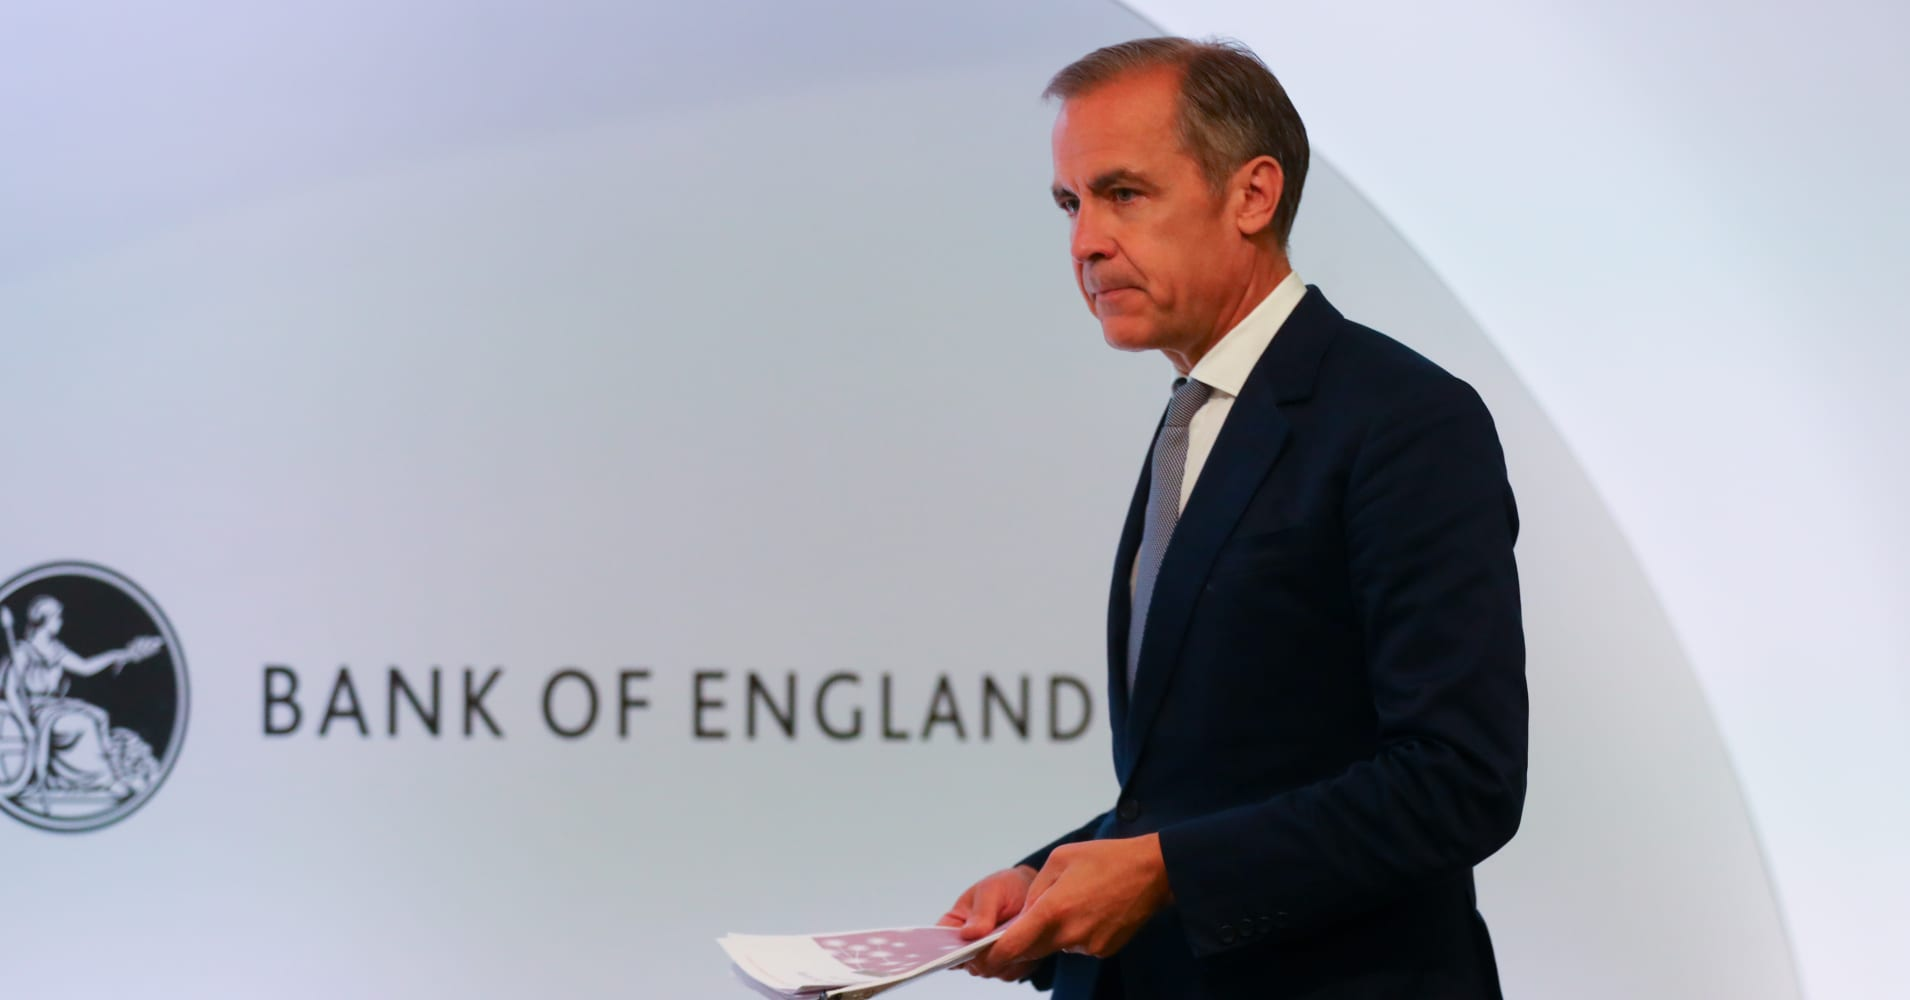 Britain starts search for 'highest caliber' Bank of England governor